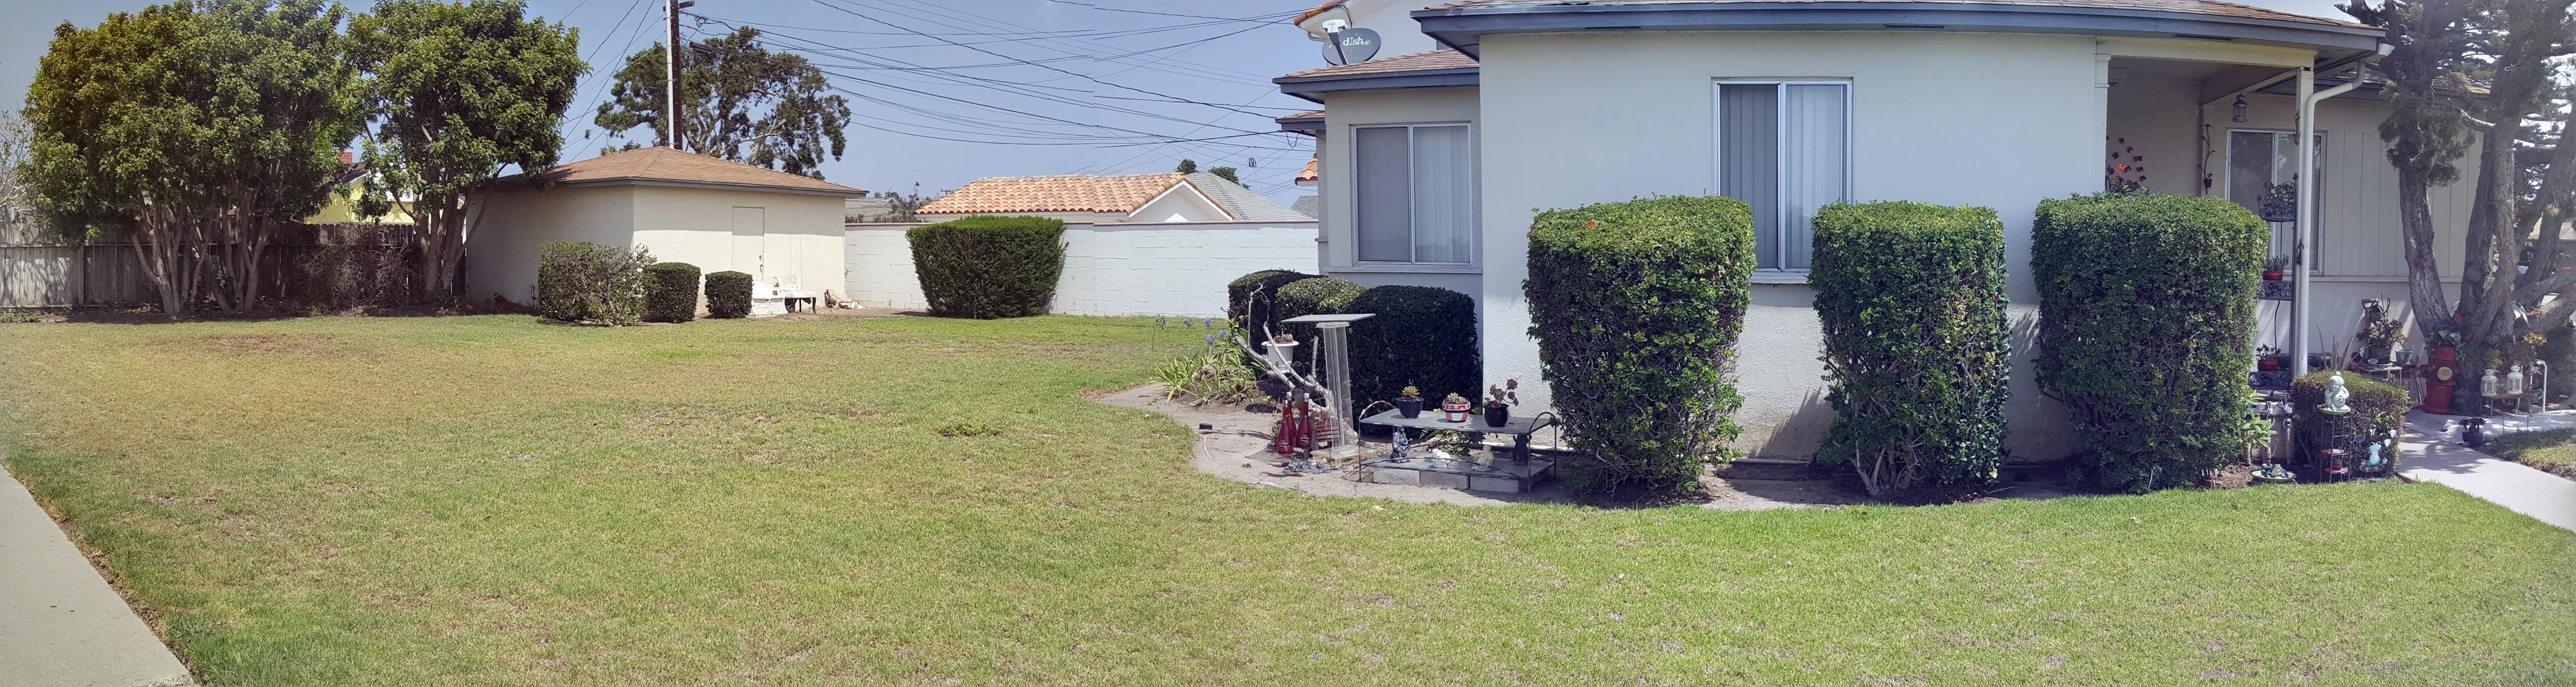 North Oxnard home for sale